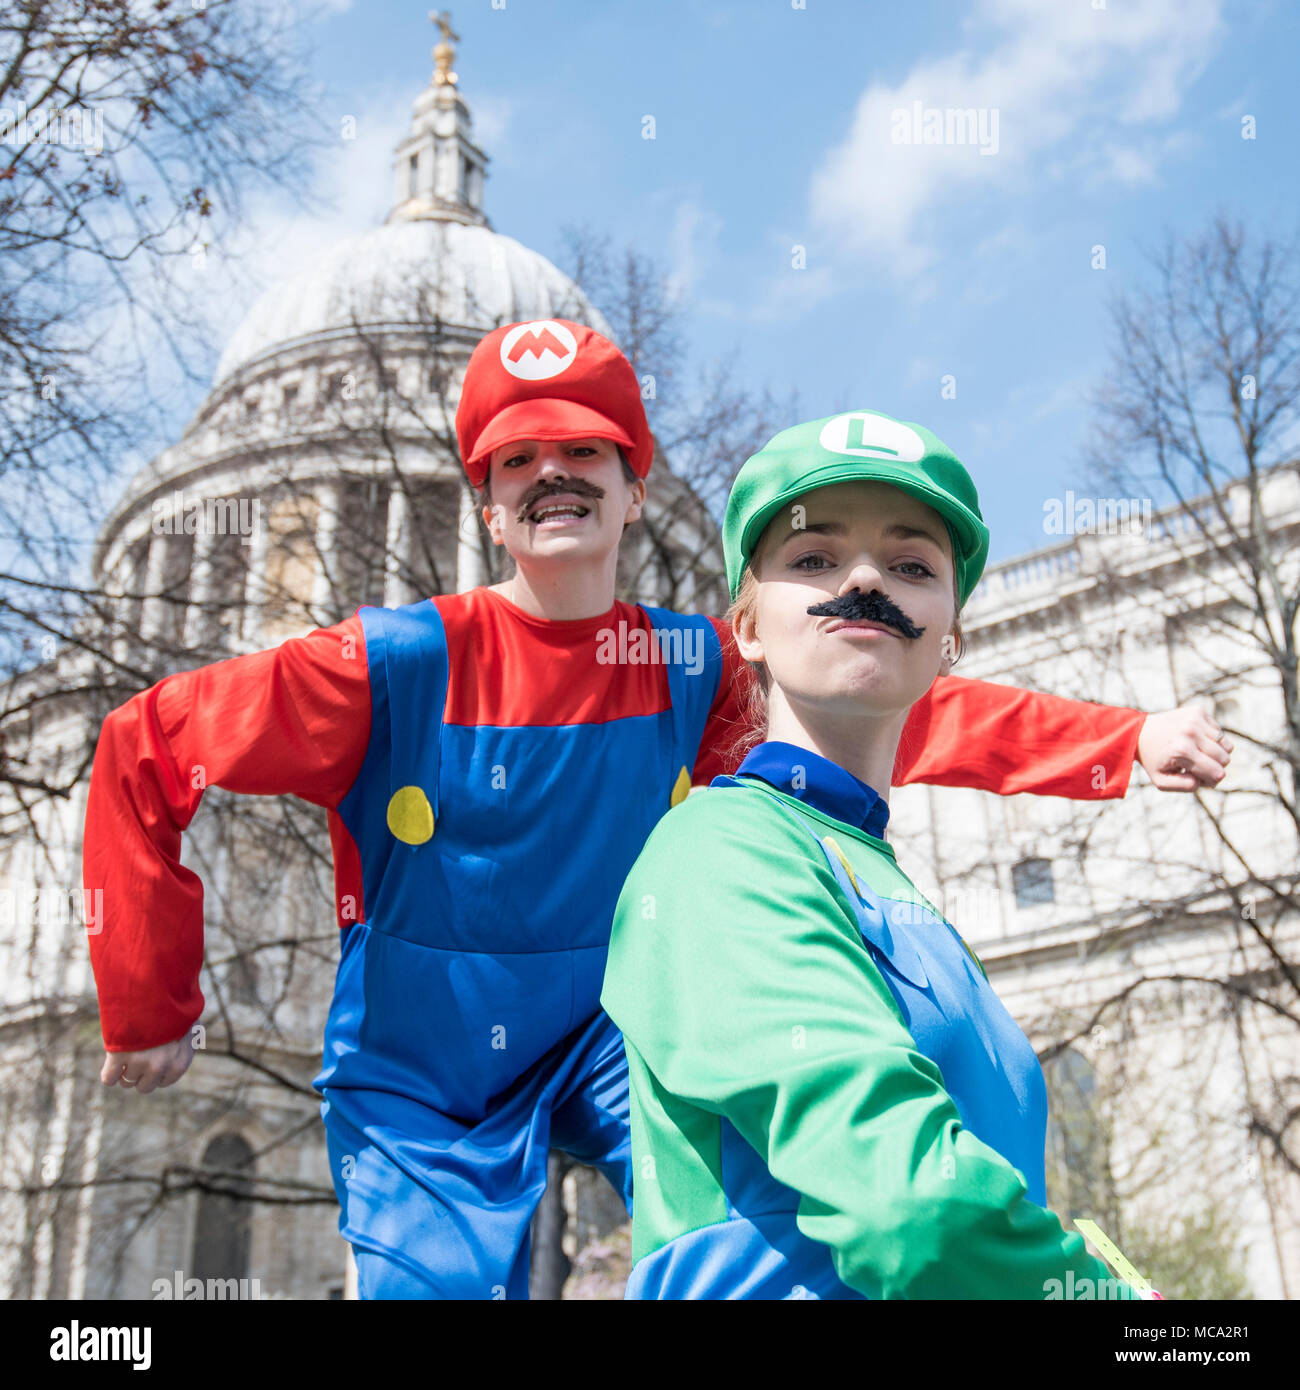 London, UK.  14 April 2018.  Followers of cosplay pose during the Games Character Parade.  The parade is part of the London Games Festival with a route from Guildhall Yard to St. Paul's Cathedral.  Credit: Stephen Chung / Alamy Live News - Stock Image